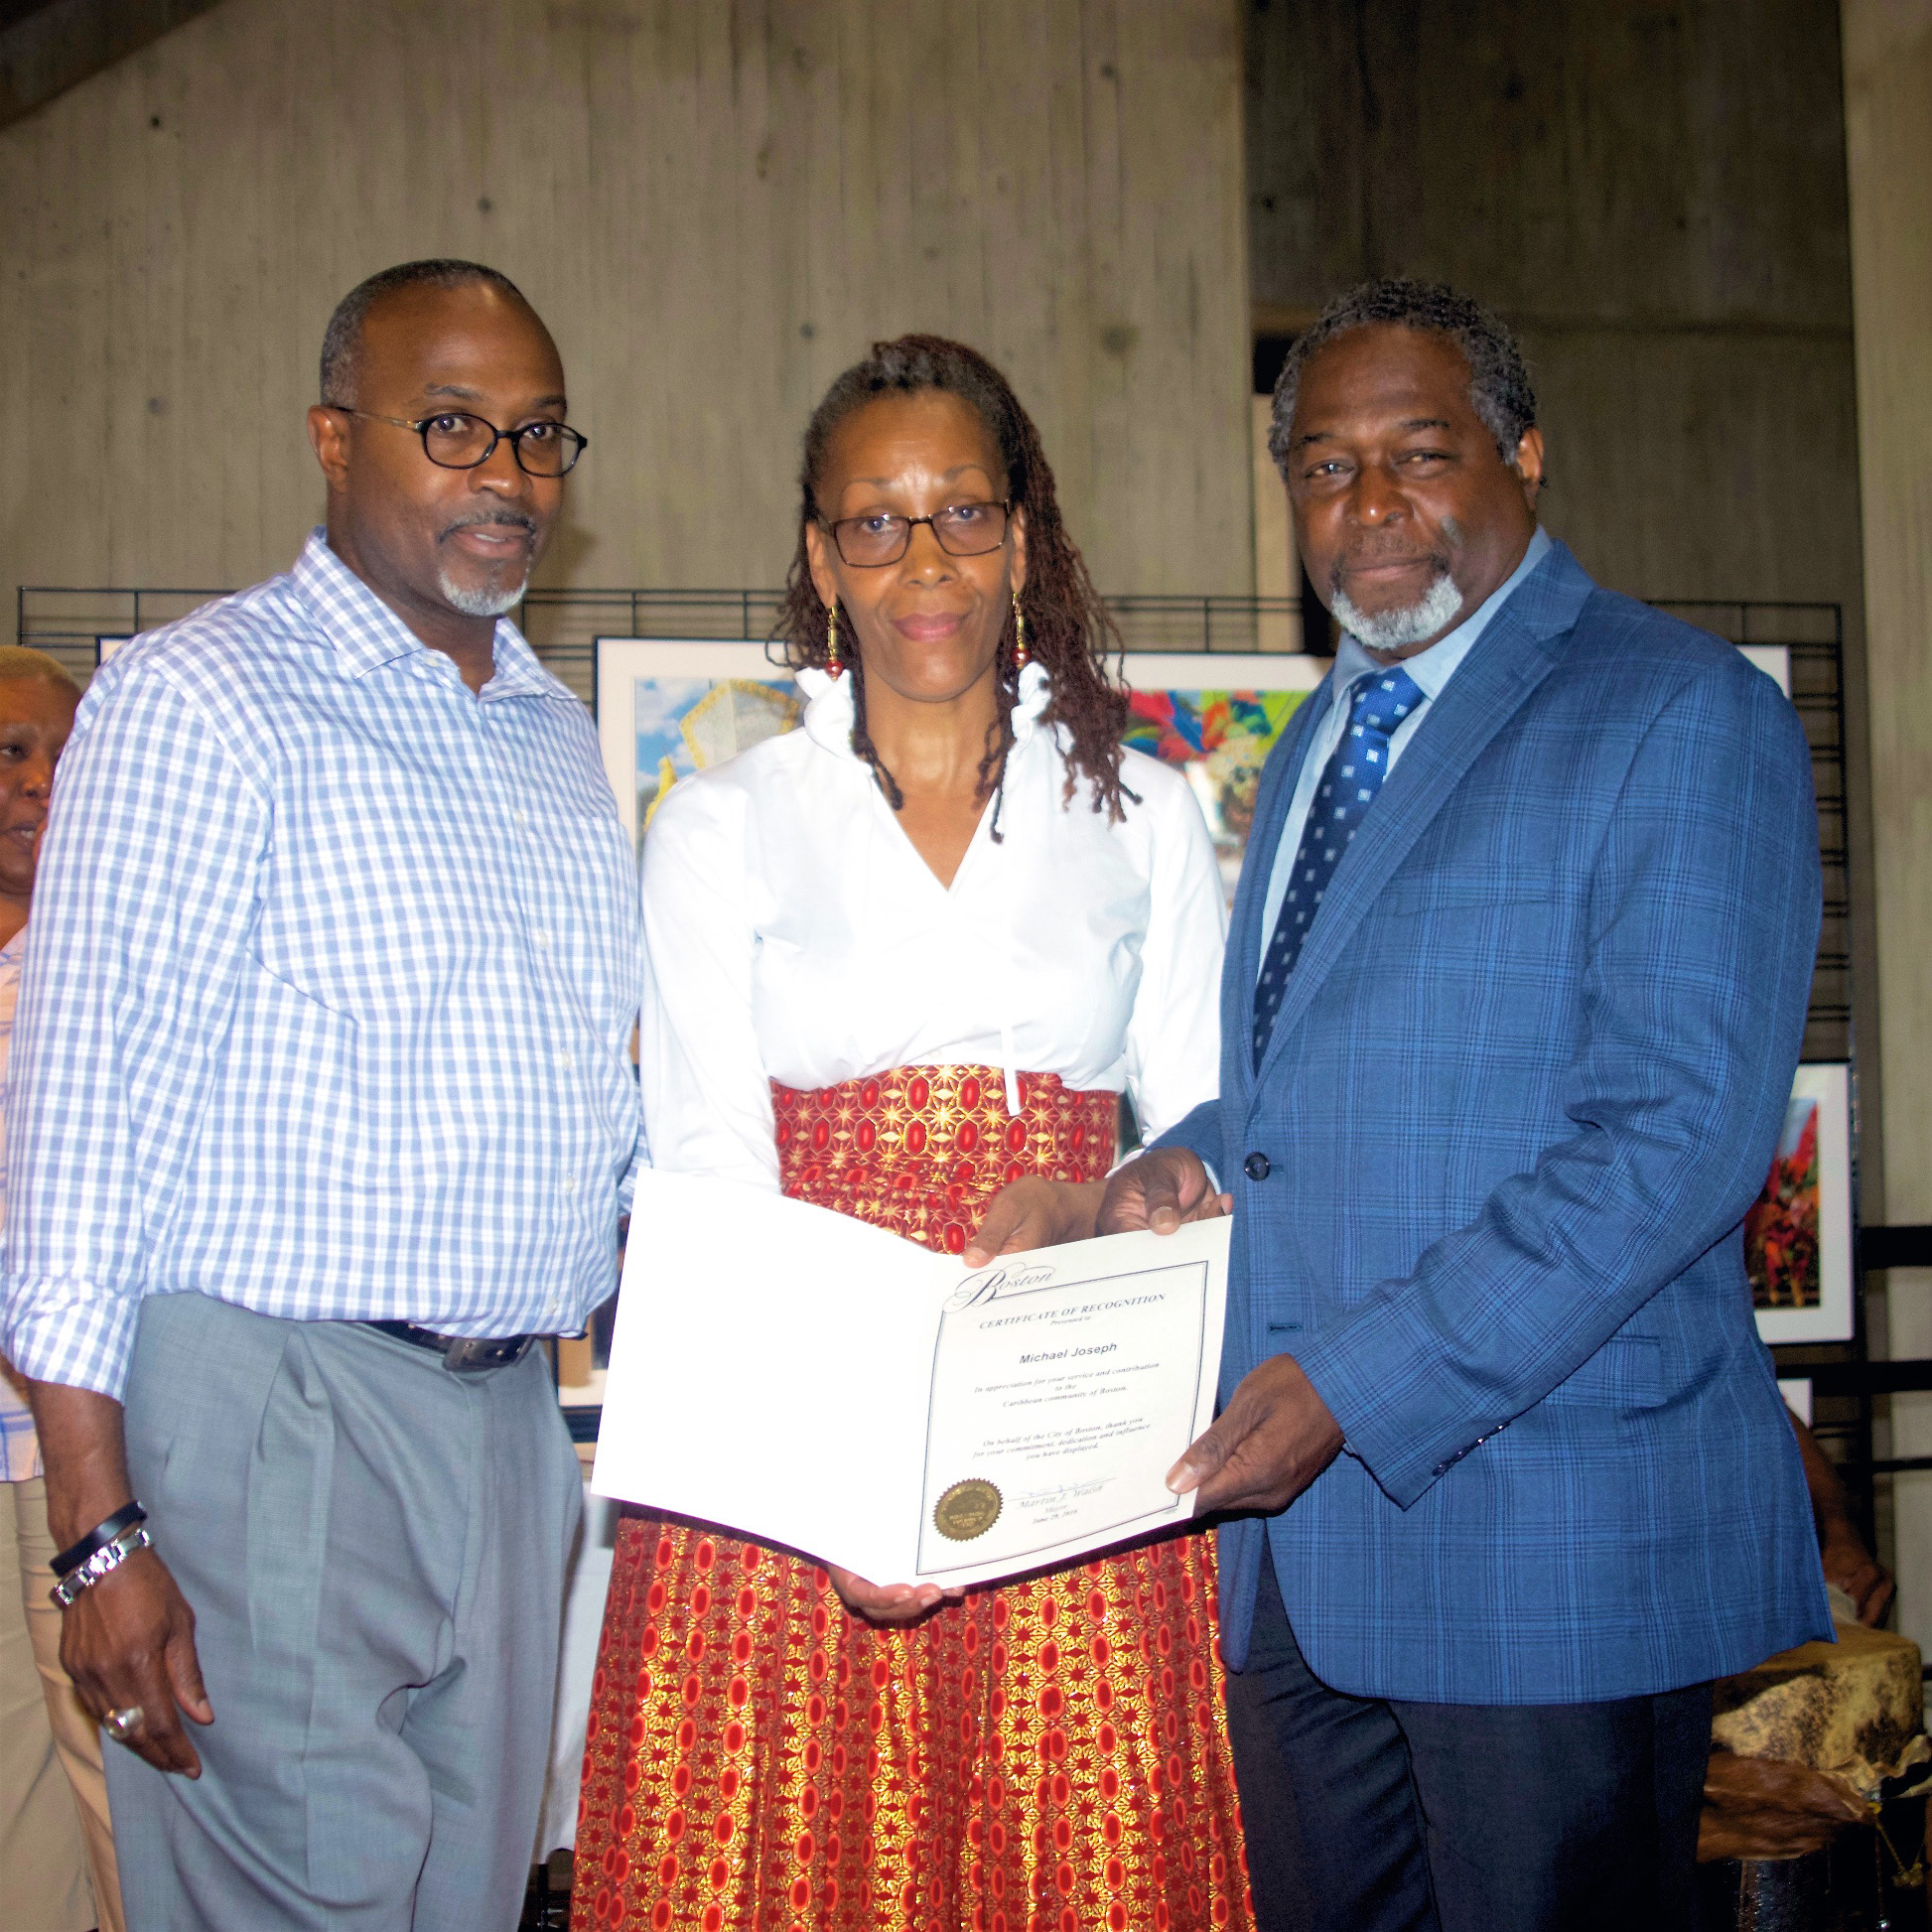 photo of MES student Michael Joseph receiving the Boston Certificate of Recognition